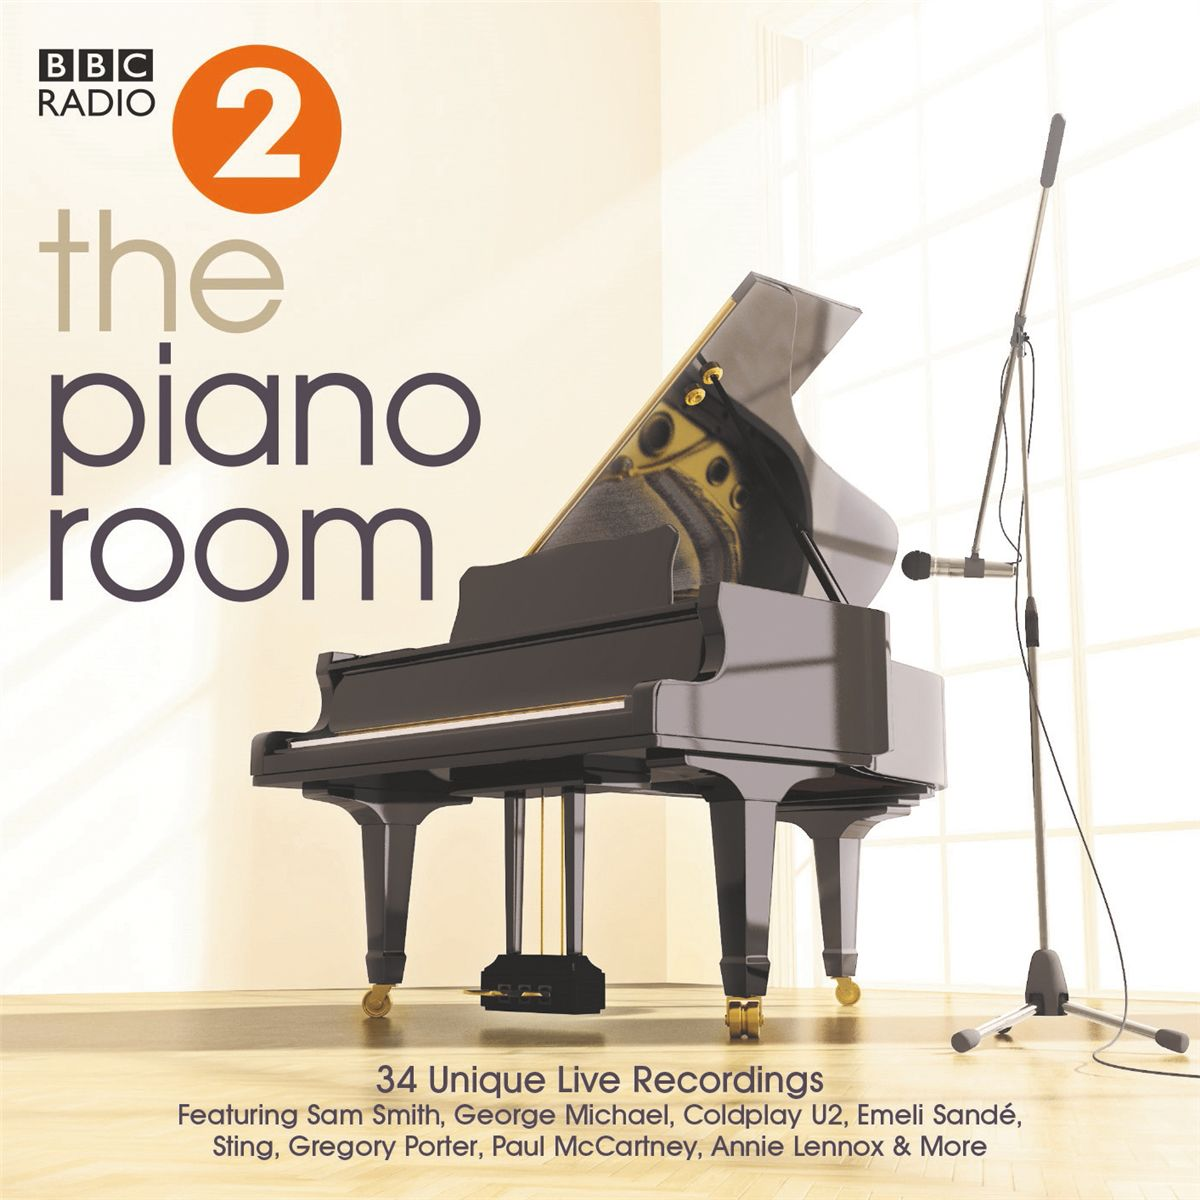 the piano room album cover